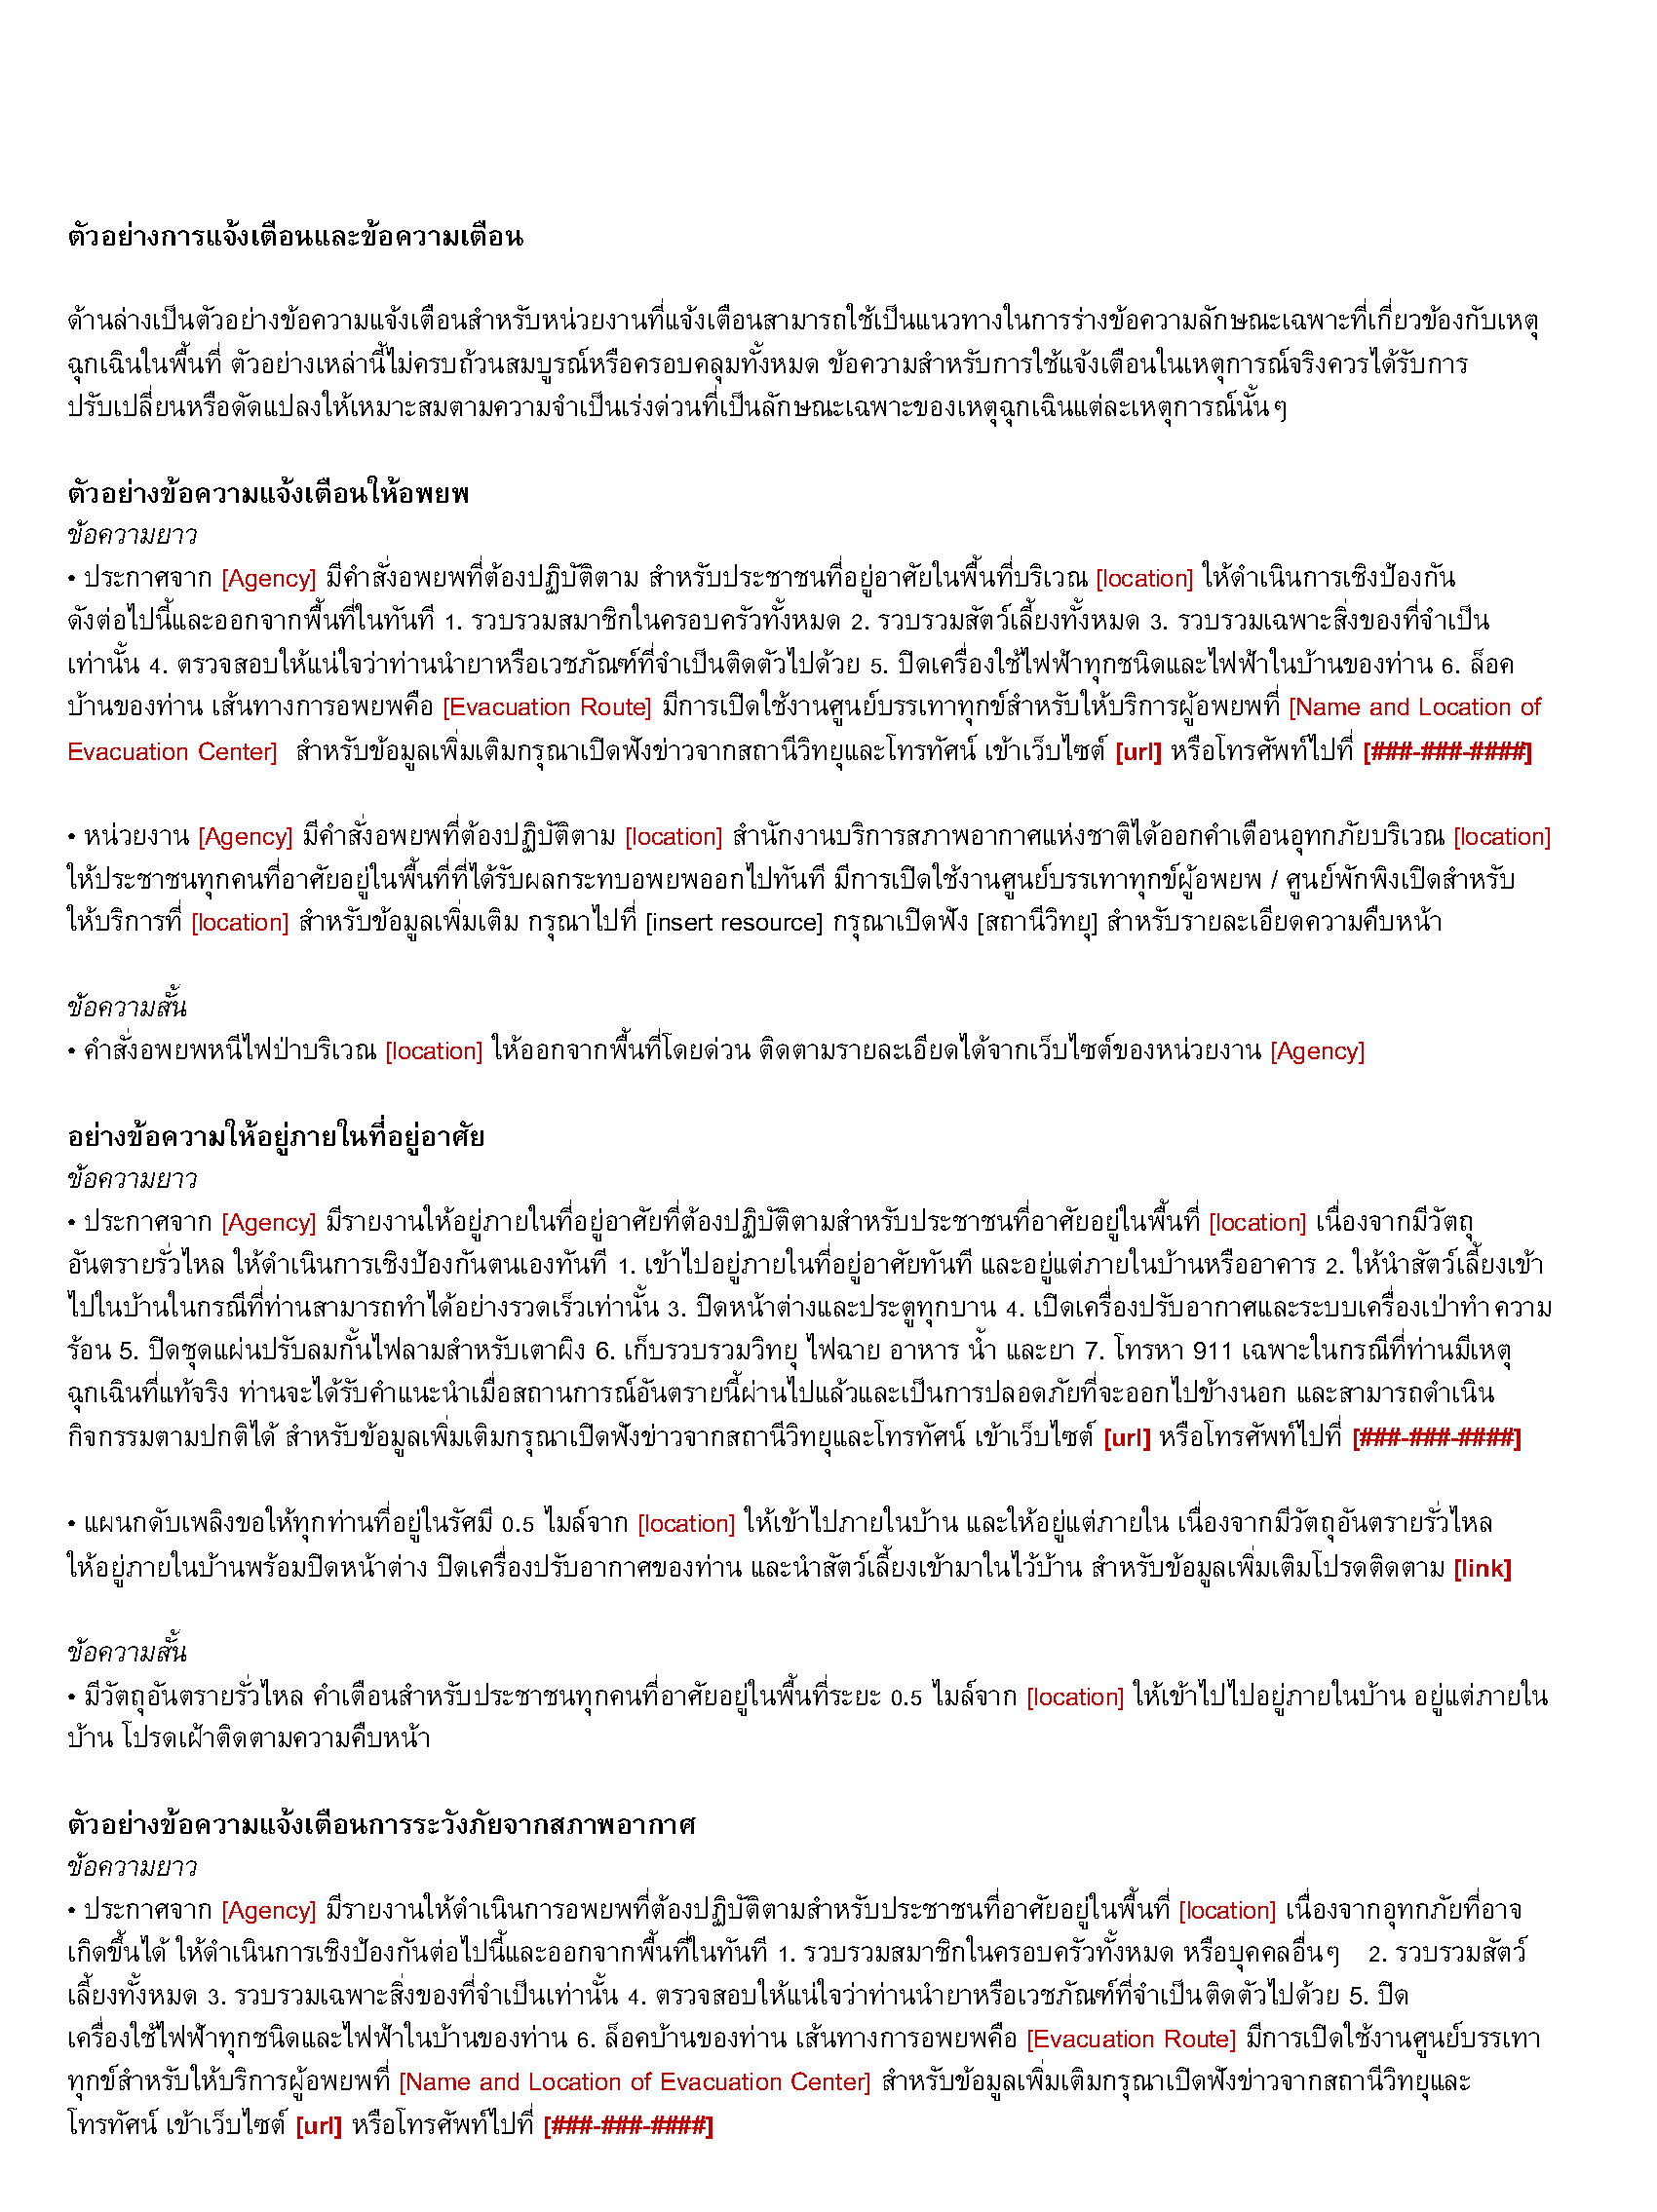 Image of the Sample AW Messages Thai document